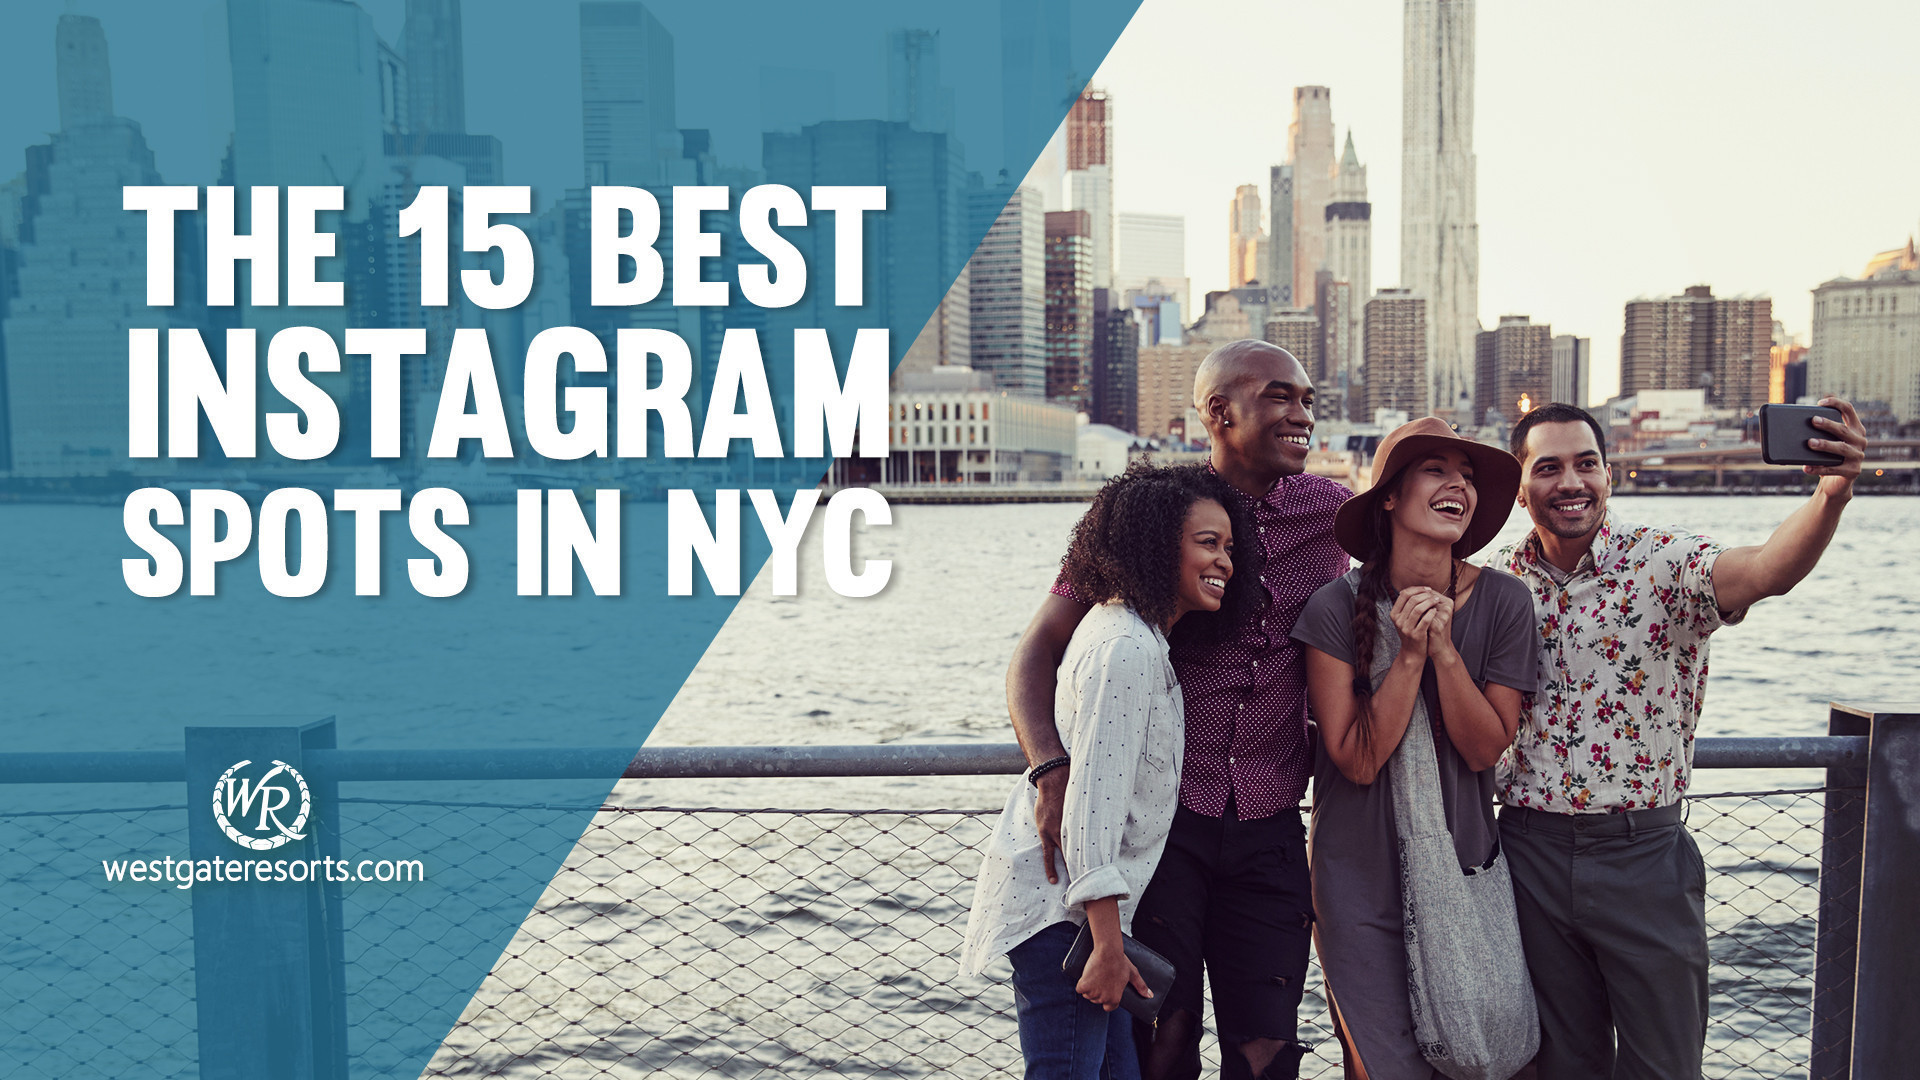 People Trying The 15 Best Instagram Spots In NYC | NYC Instagram Spots Near Westgate New York City